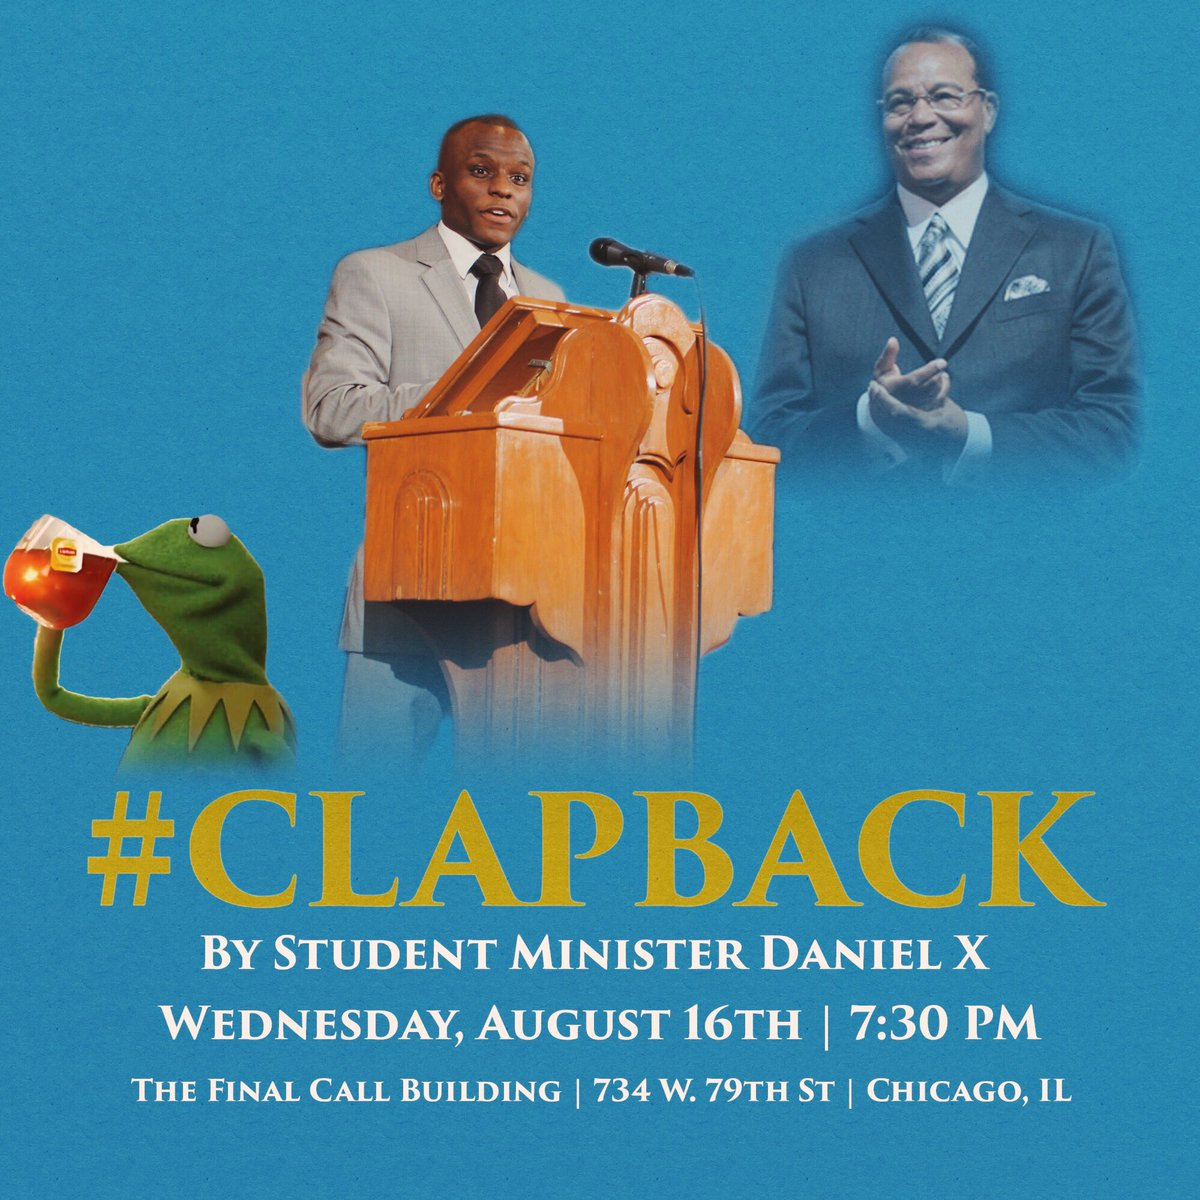 Make sure you all come out tonight 7:30 to the @FinalCallStore to hear brother #StudentMinister @Mental_Chemist  #topic #ClapBack #FCN #NOI<br>http://pic.twitter.com/63MMtpWlTG